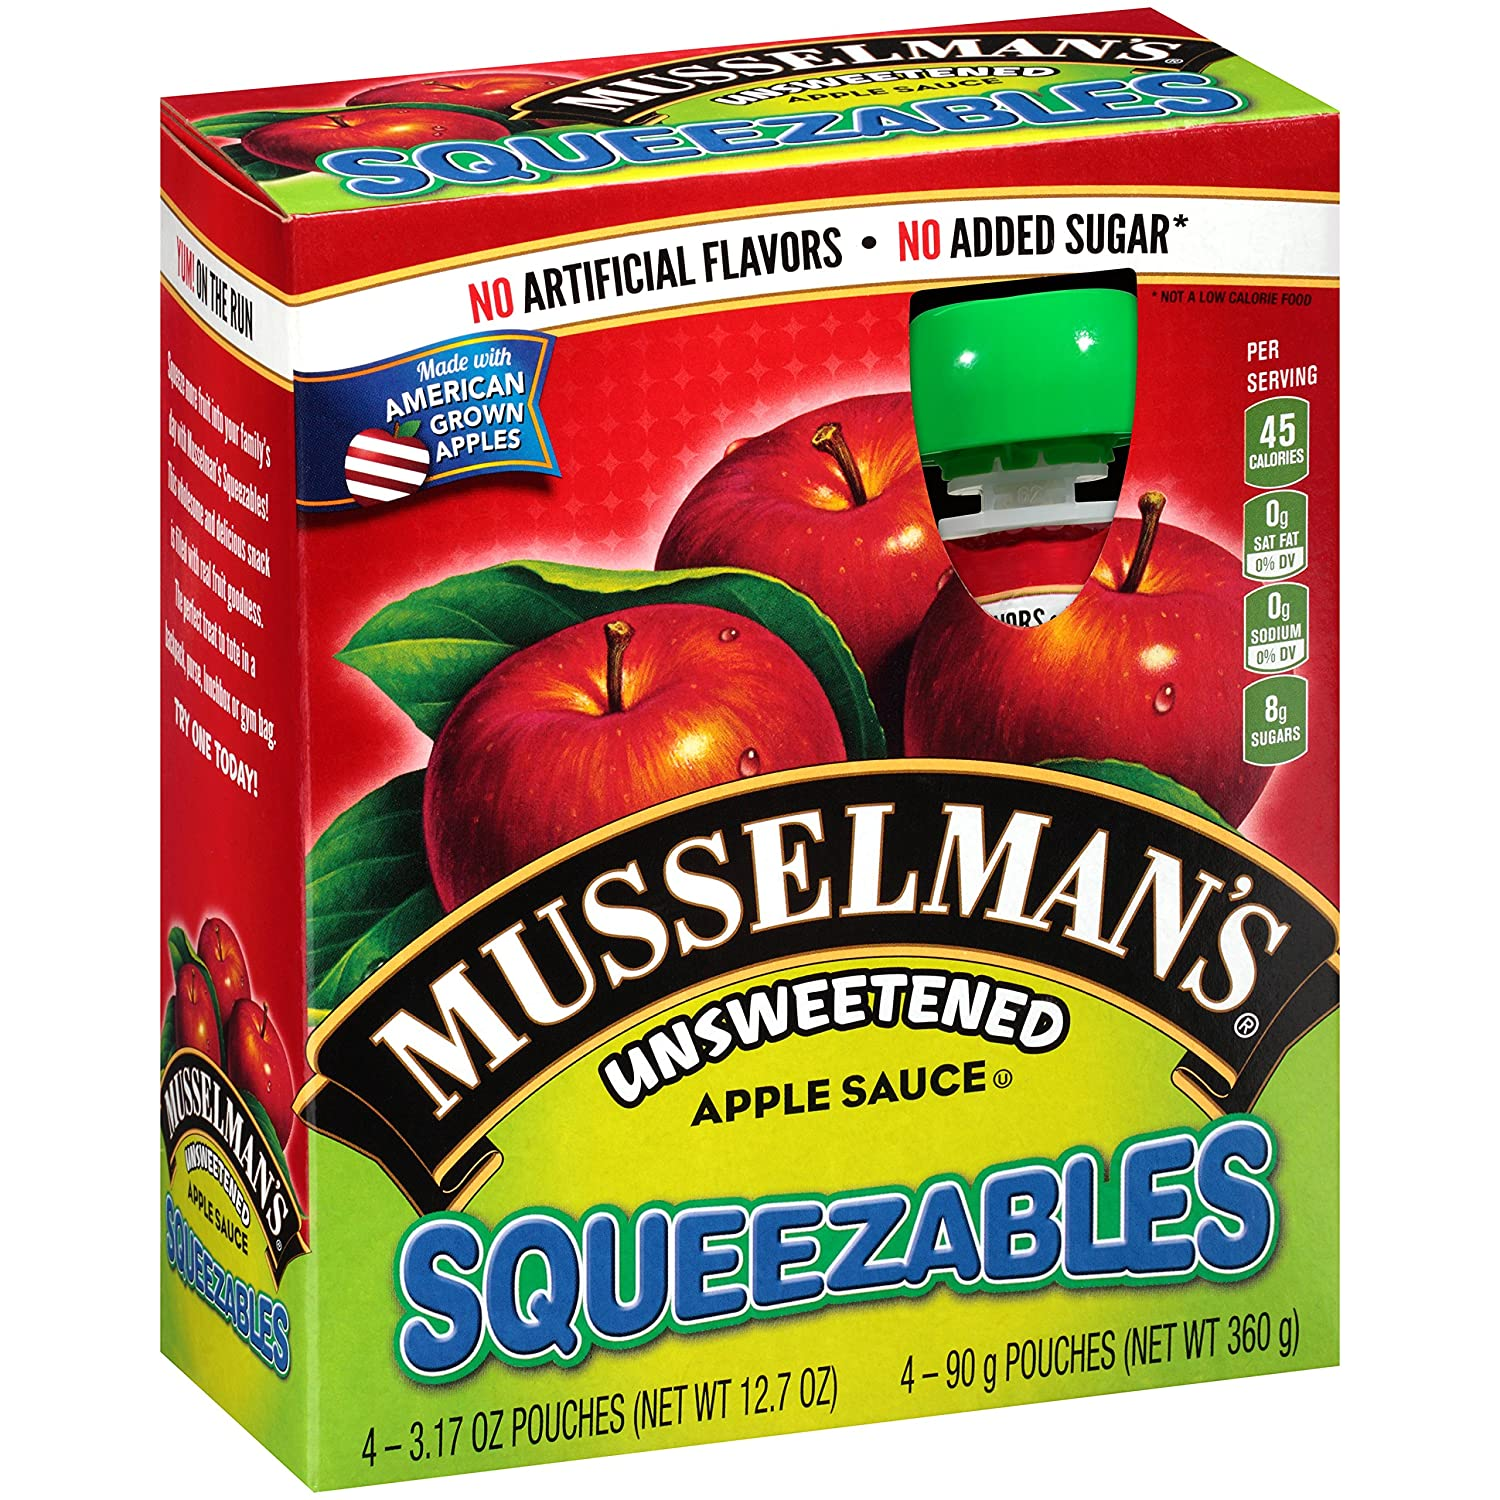 Musselman's Squeezable Unsweetened Apple Sauce Pouches, 3.17 Ounce (Pack of 6)